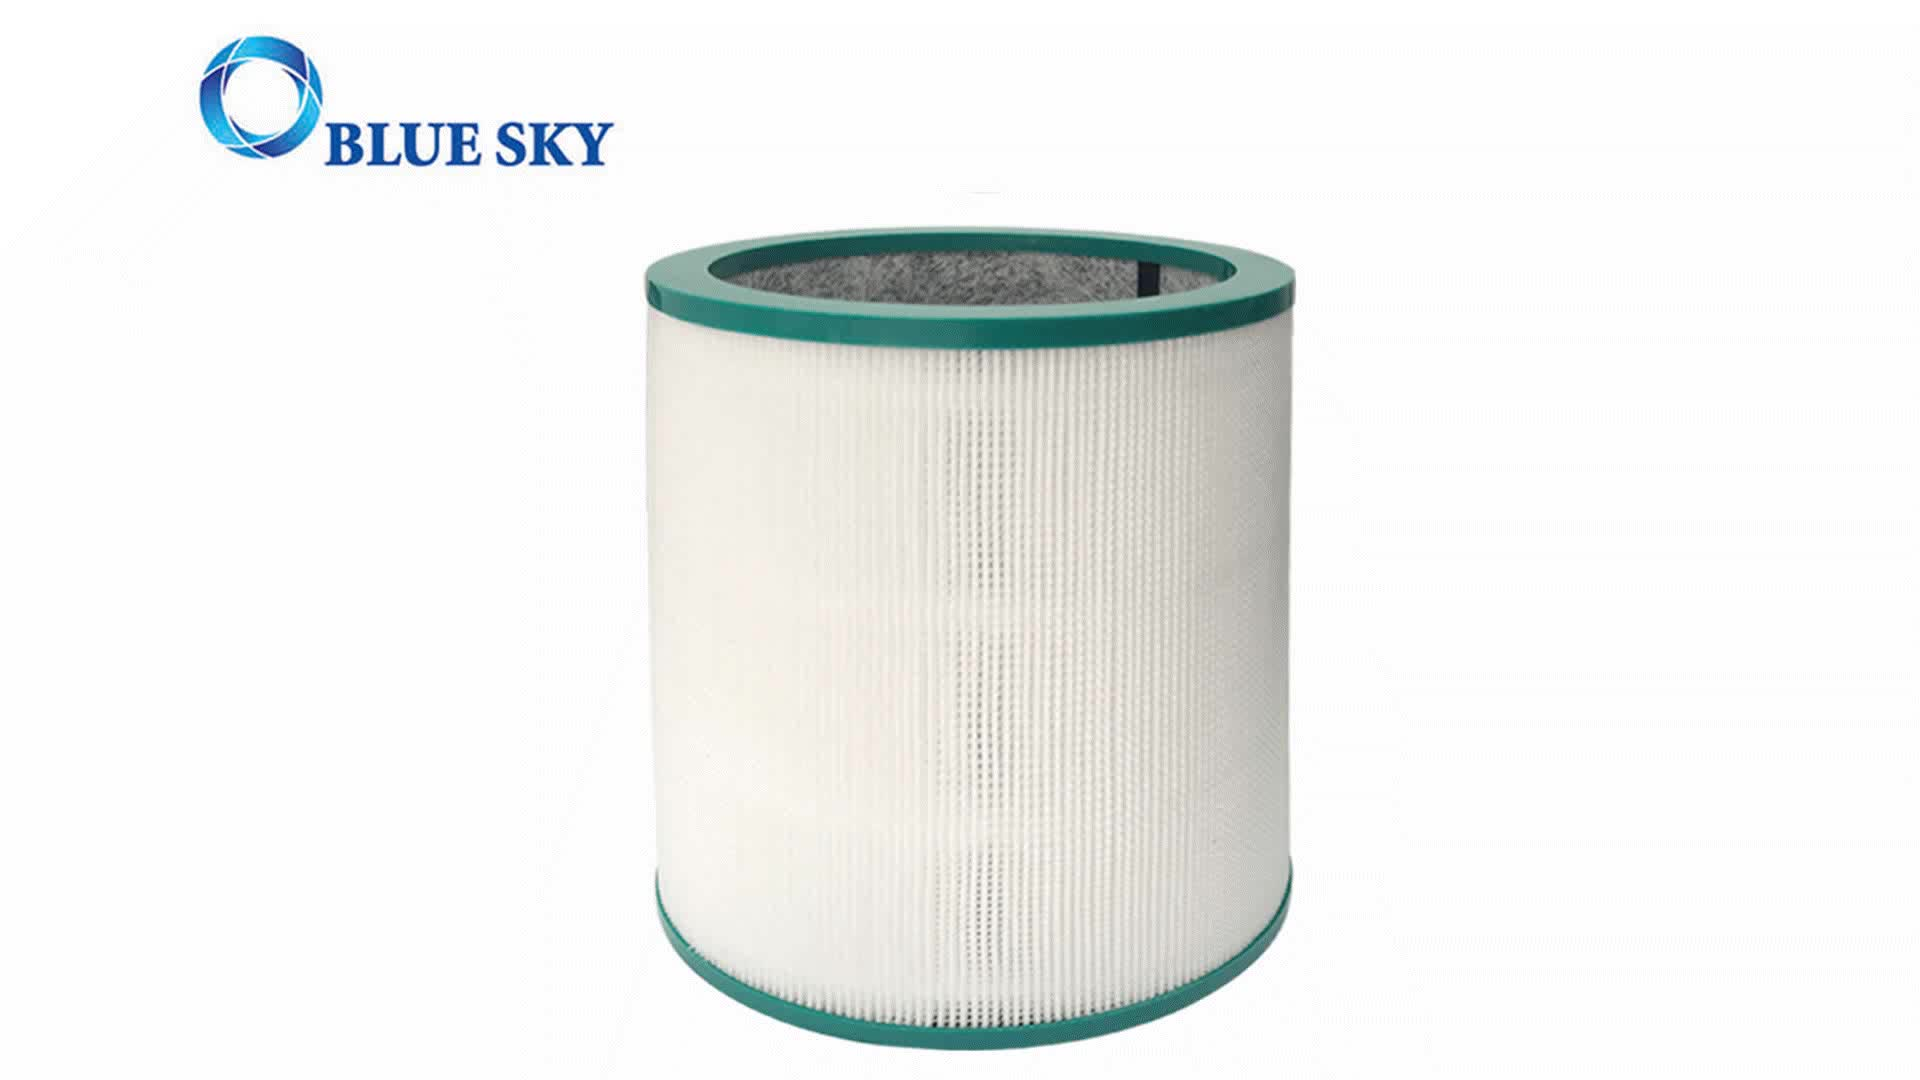 Cartridge HEPA Air Filter for Pure Cool Link TP02 TP03 AM11 Tower Purifier Air Purifier Replace Part 968126-03